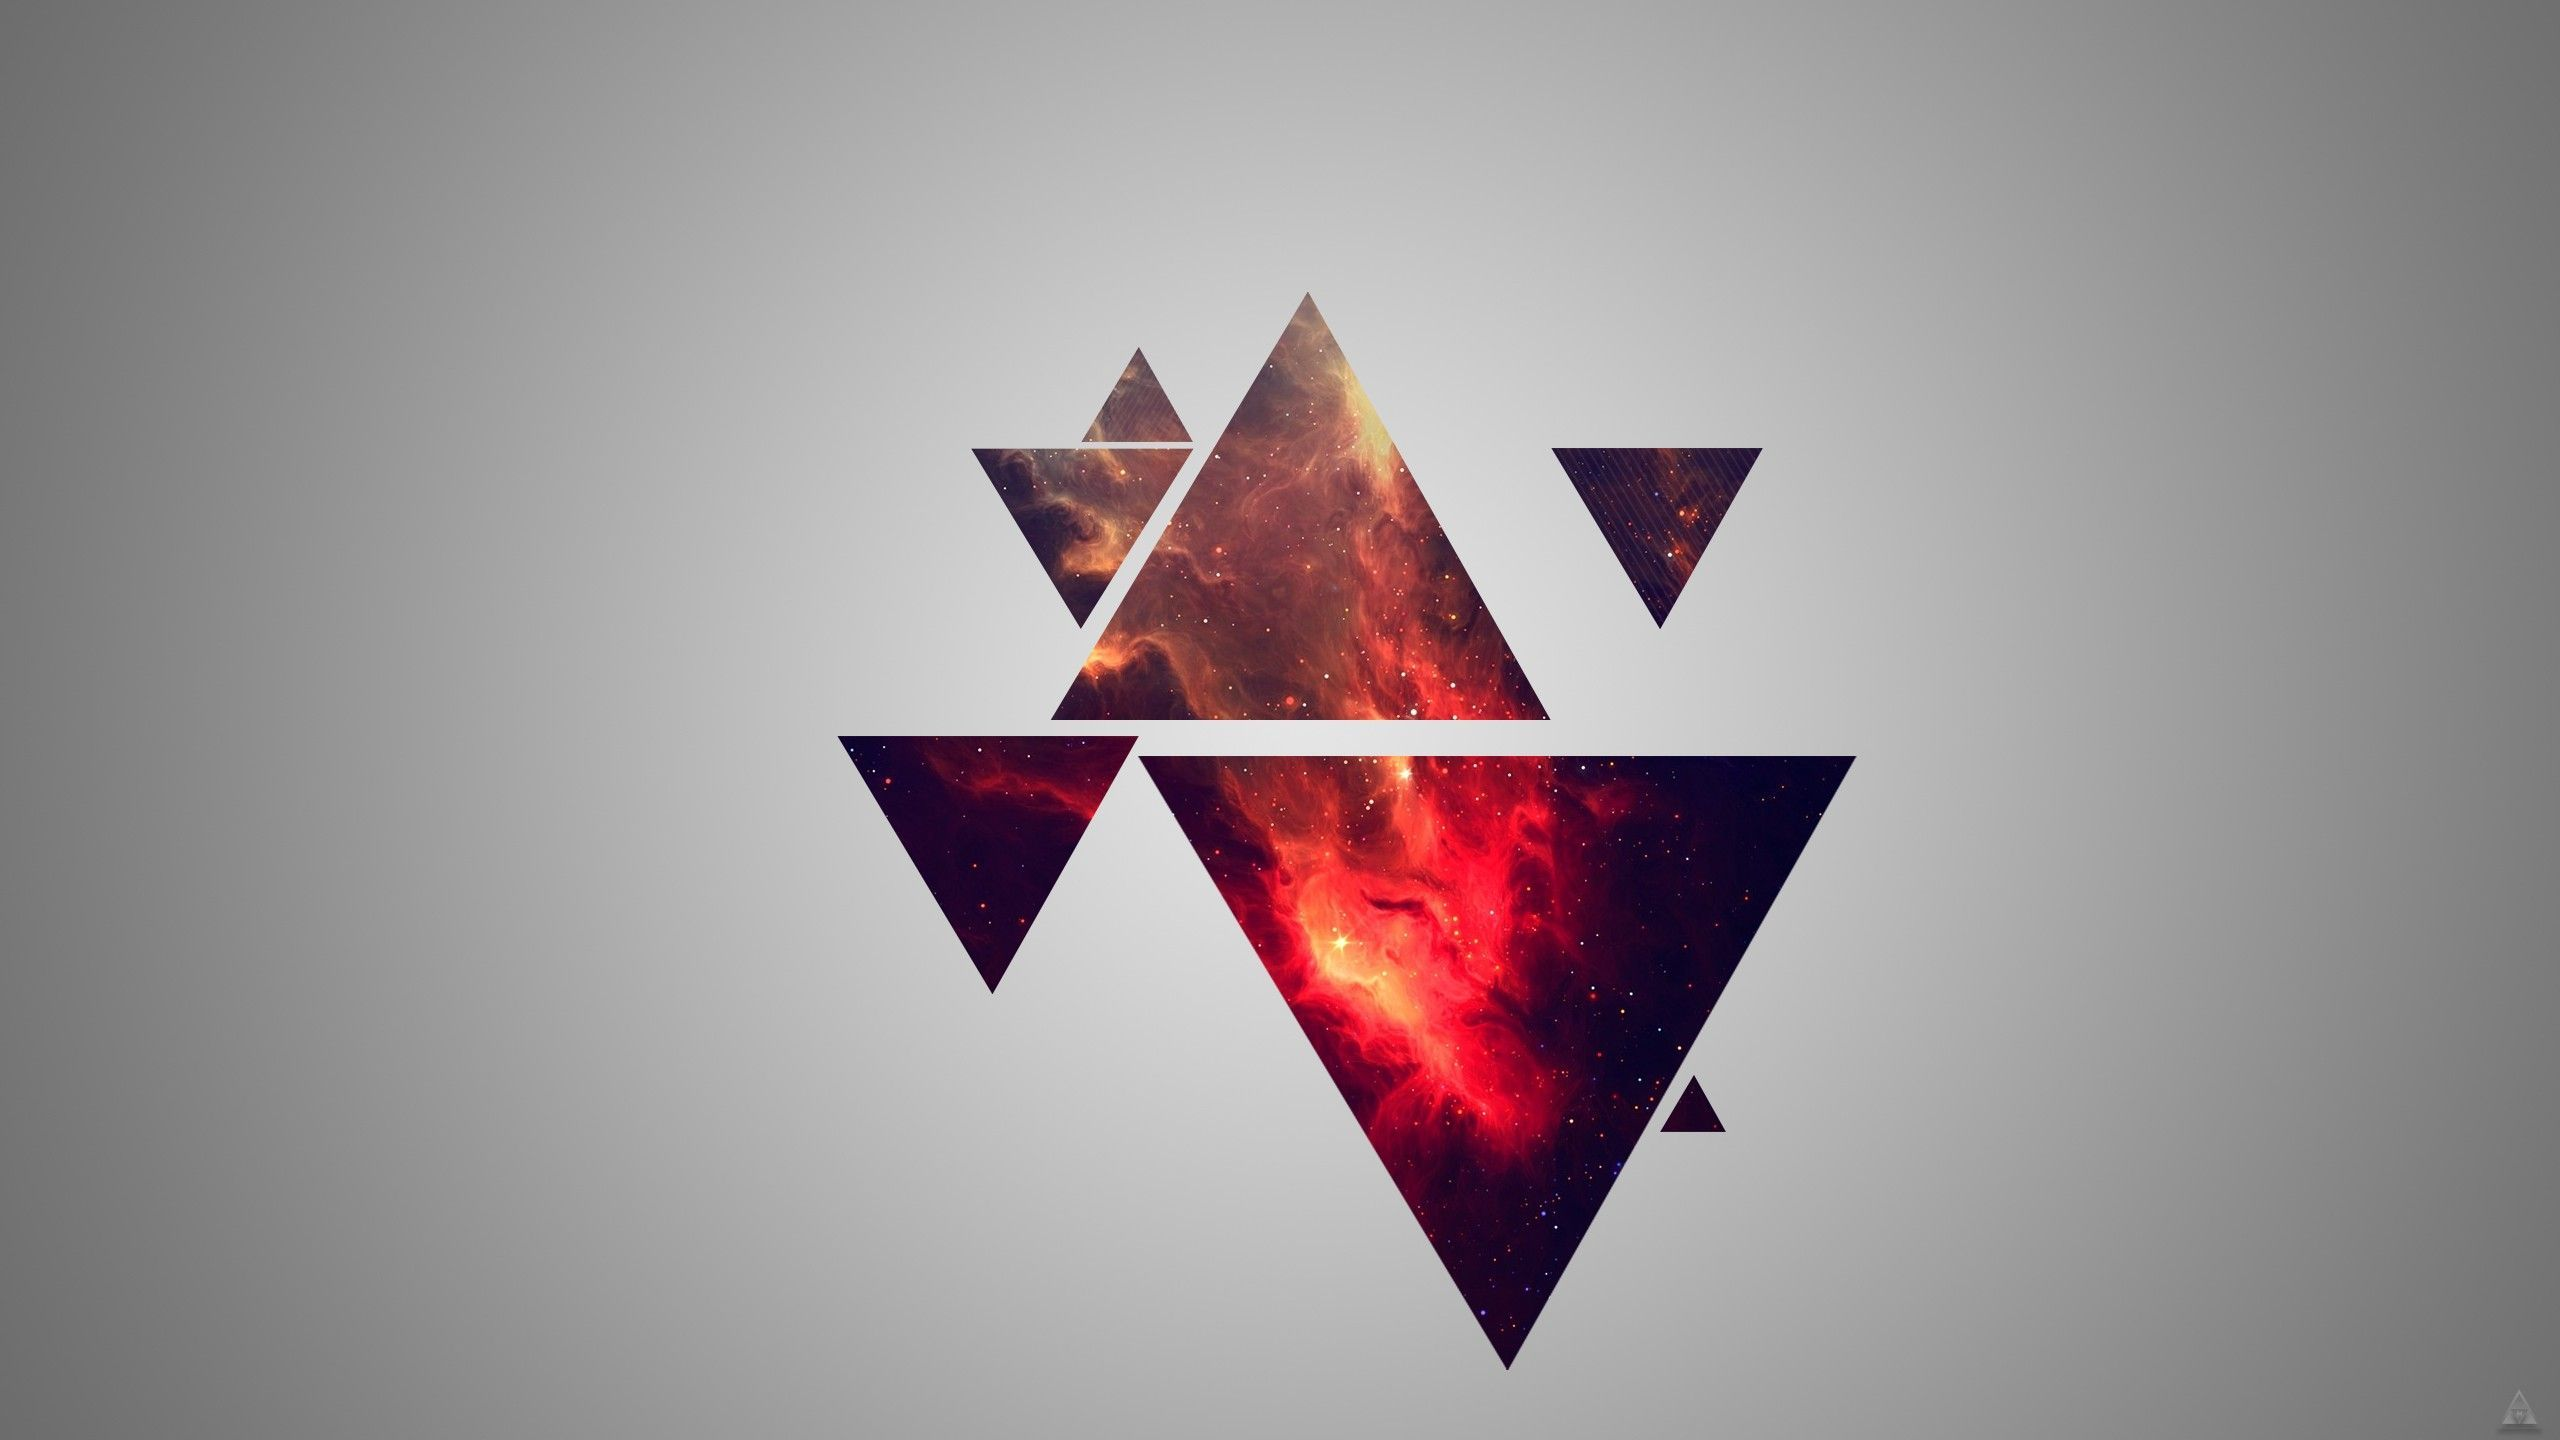 Galaxy Triangle Wallpapers Top Free Galaxy Triangle Backgrounds Wallpaperaccess